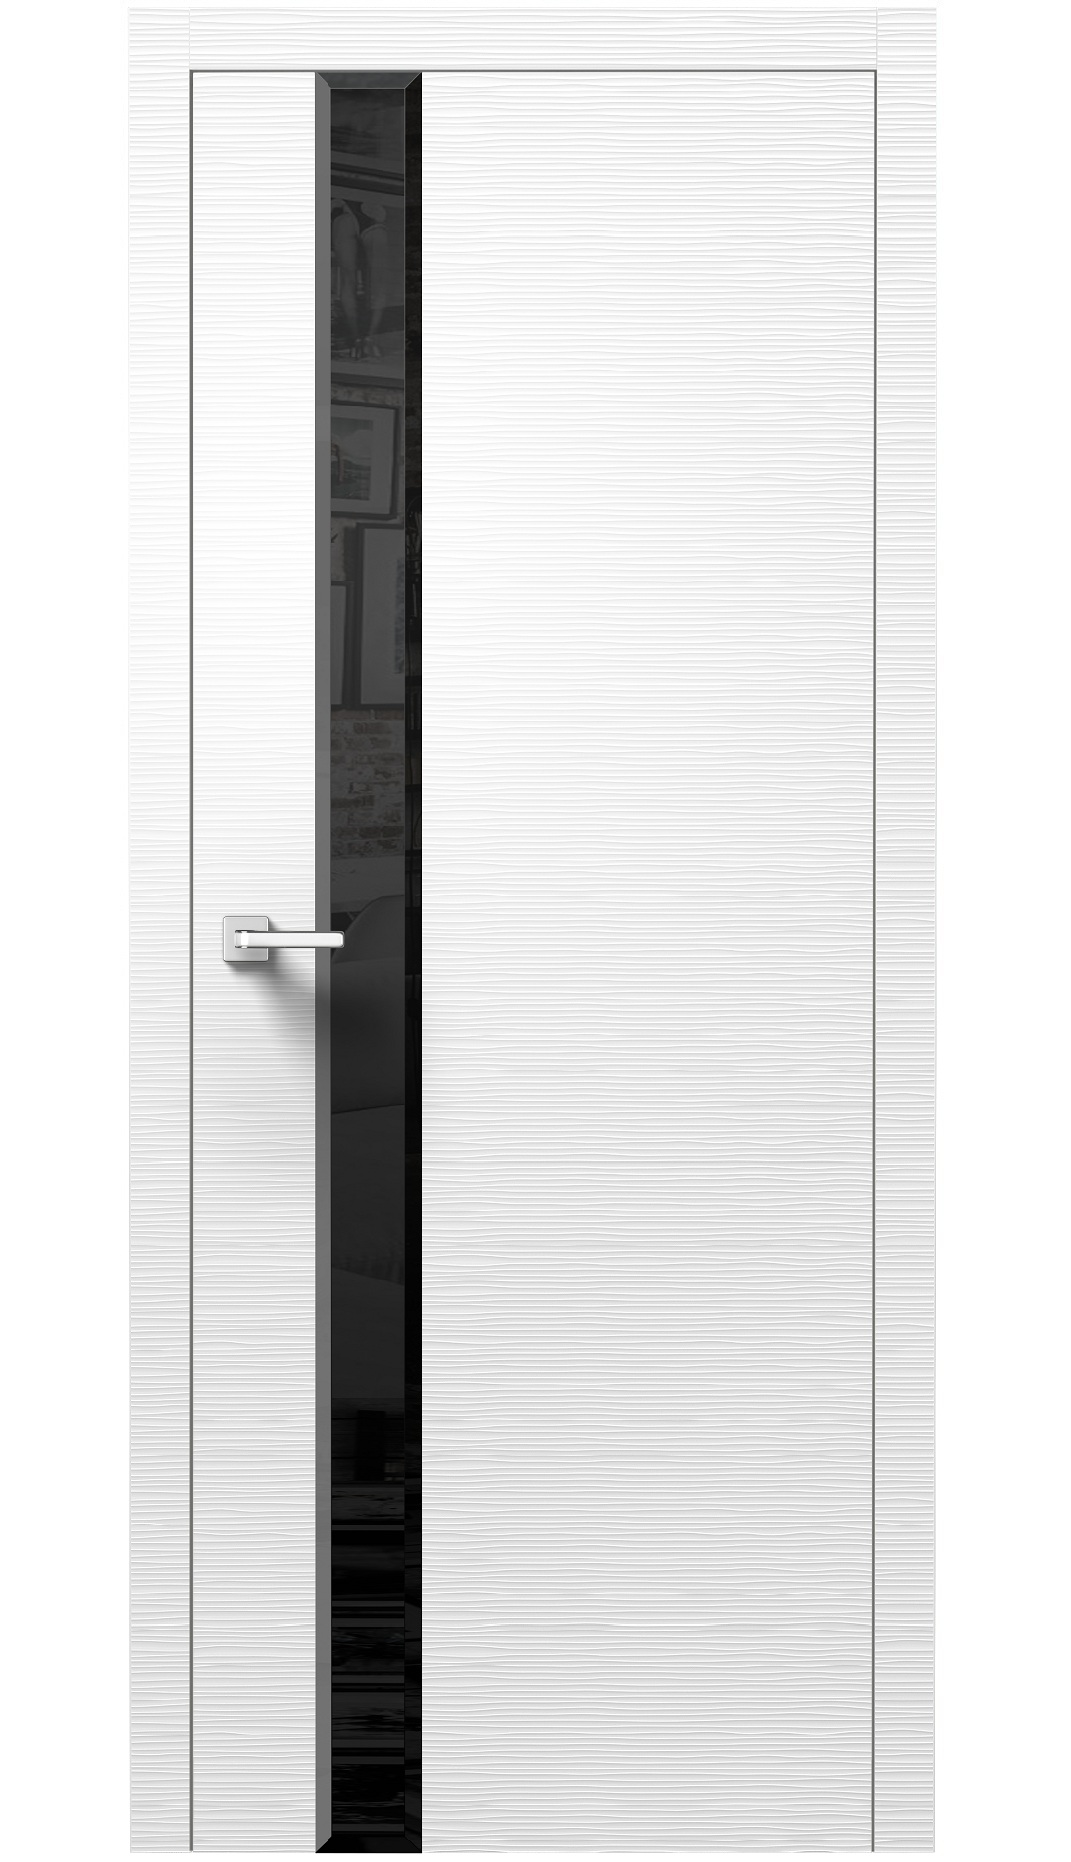 Image Dianto Interior Door 3D White / Black Beveled Glass 0